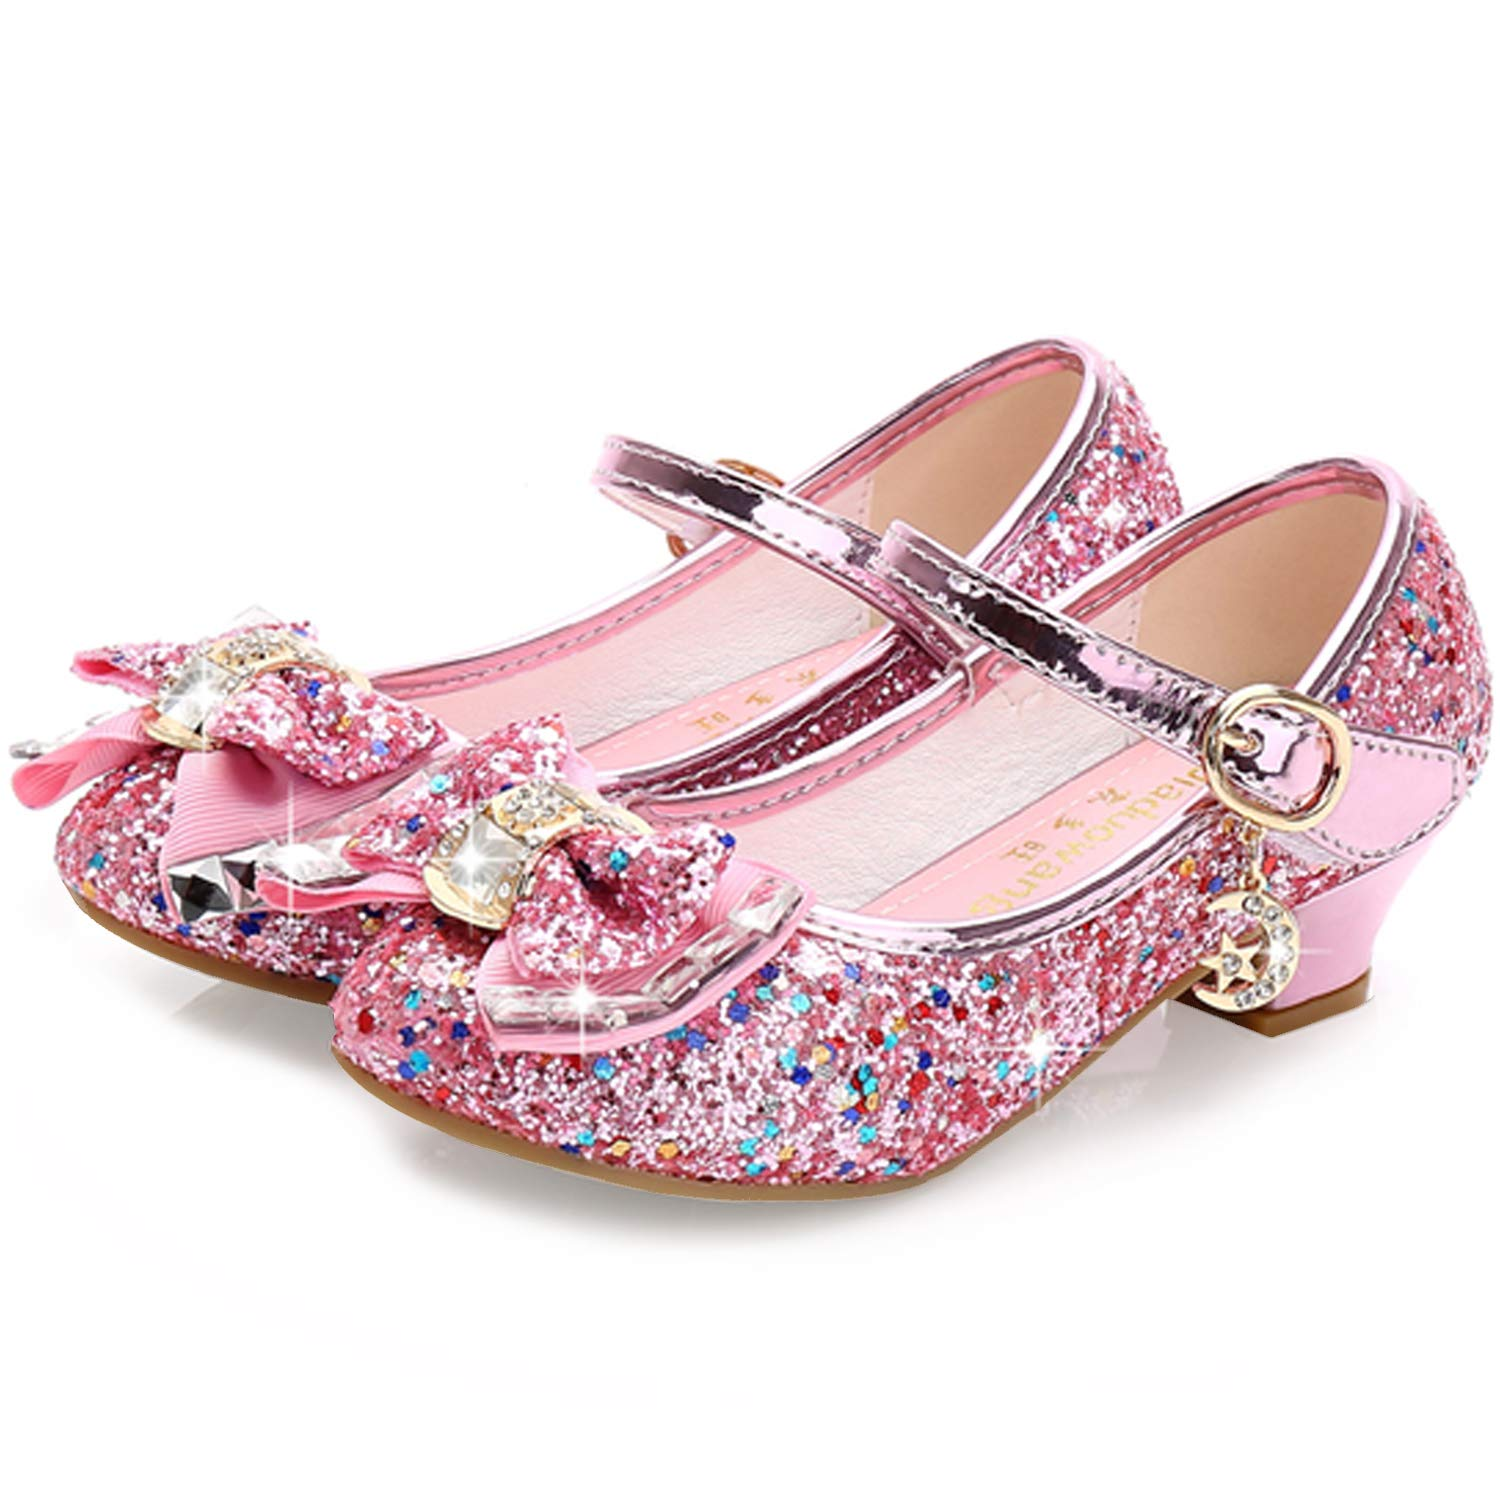 4a40aea0506c Waloka Mary Jane Shoes for Girls Size 11 Wedding Princess Pink Dress Shoes  5 Yr Bridesmaid Kids Party Flower Low High Heel Glitter Shoes for Little  Girls ...